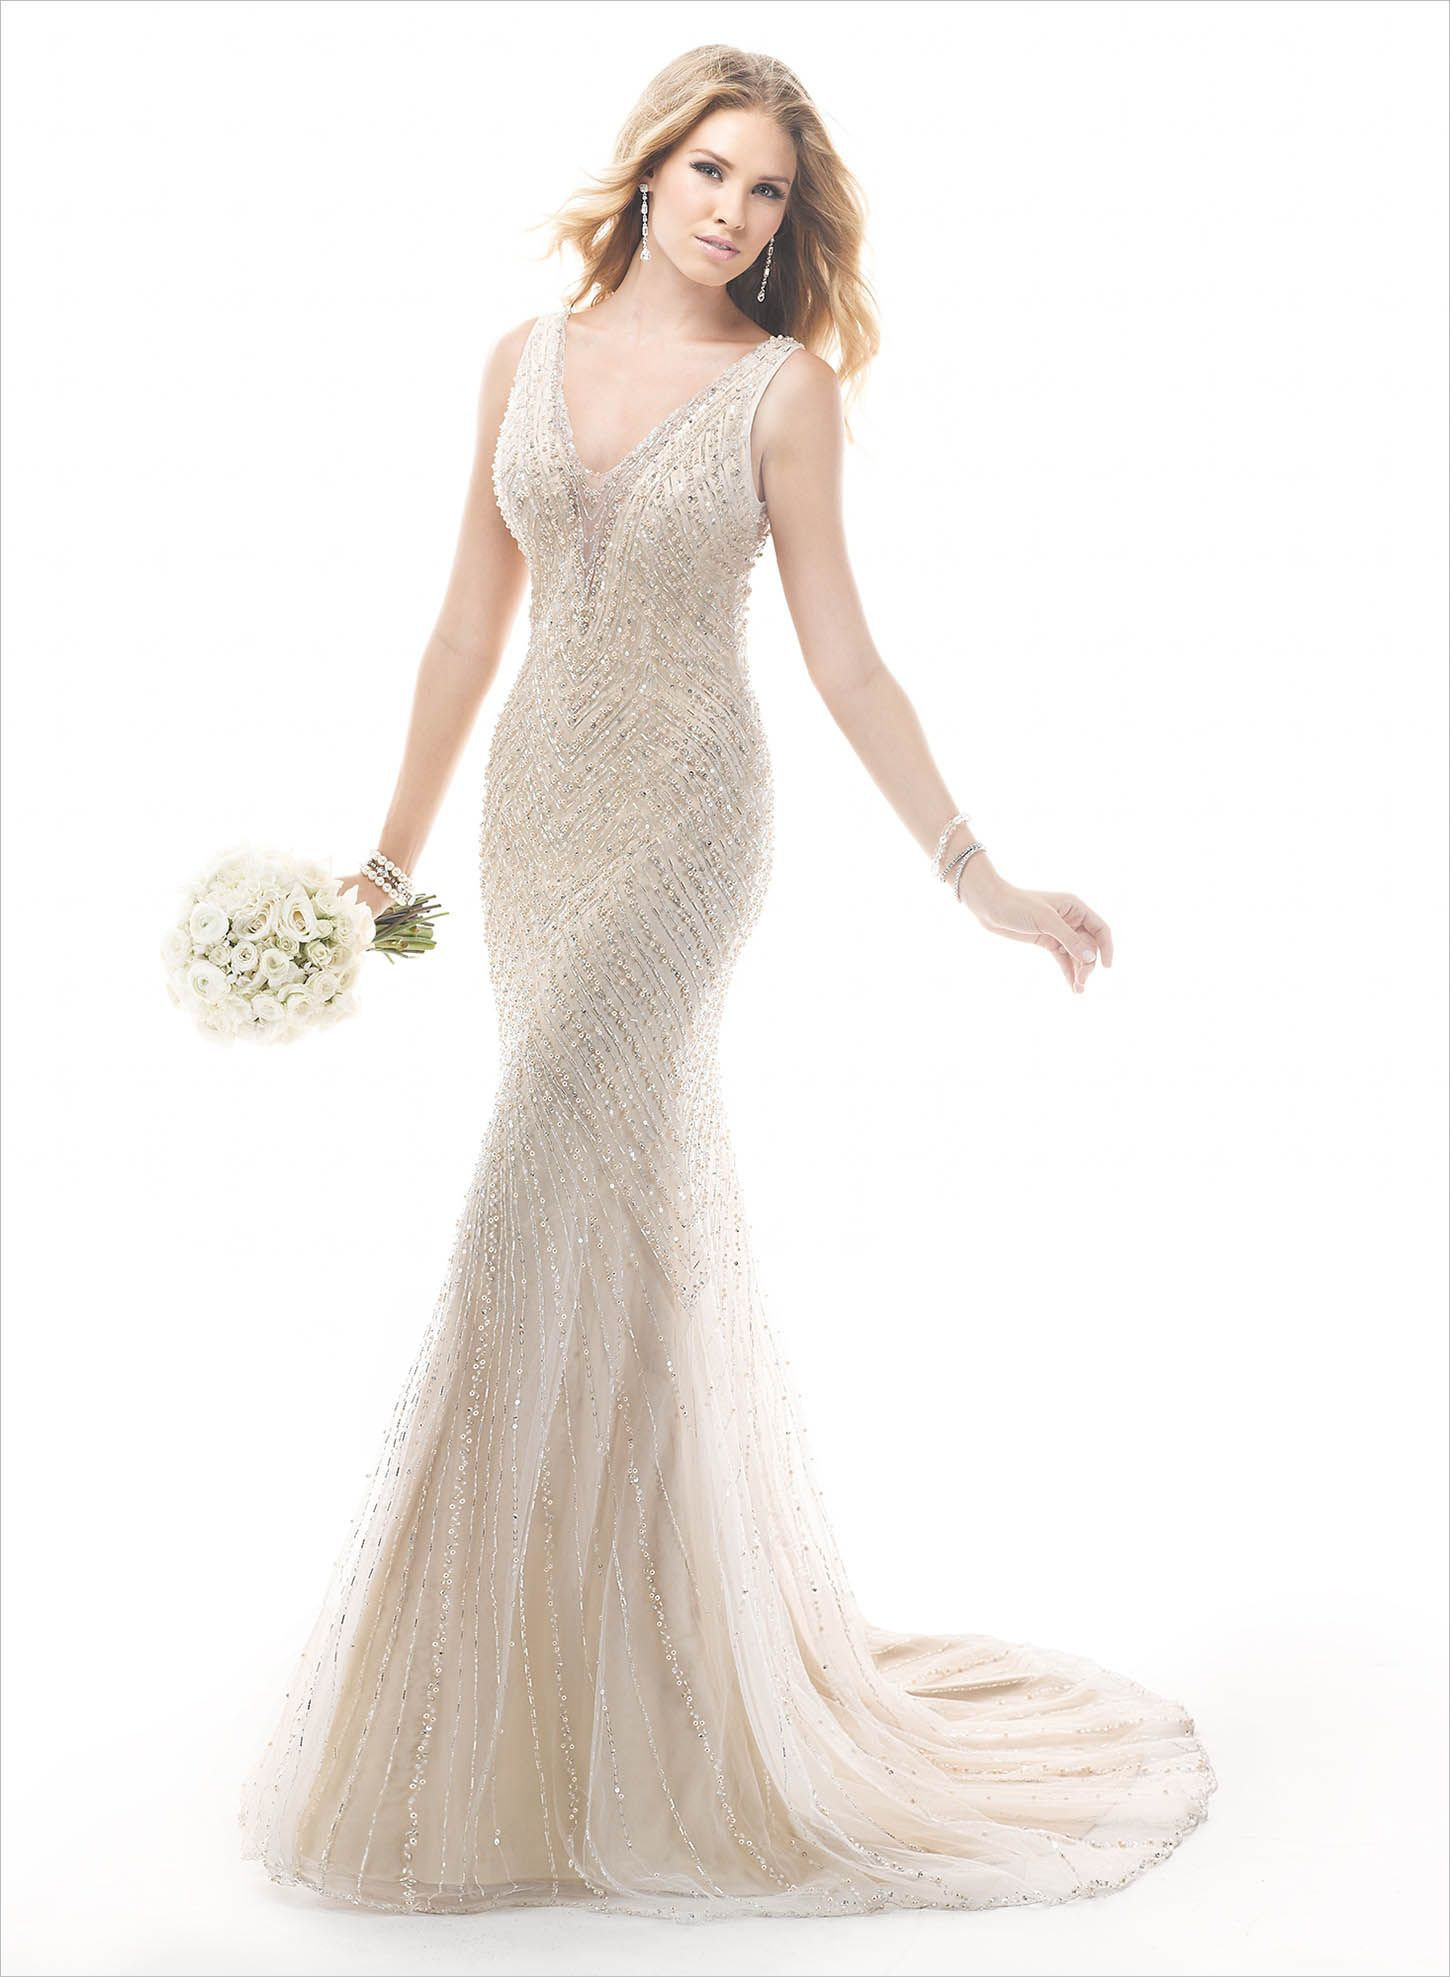 Maggie Sottero Wedding Dresses | Gatsby wedding, Maggie sottero ...